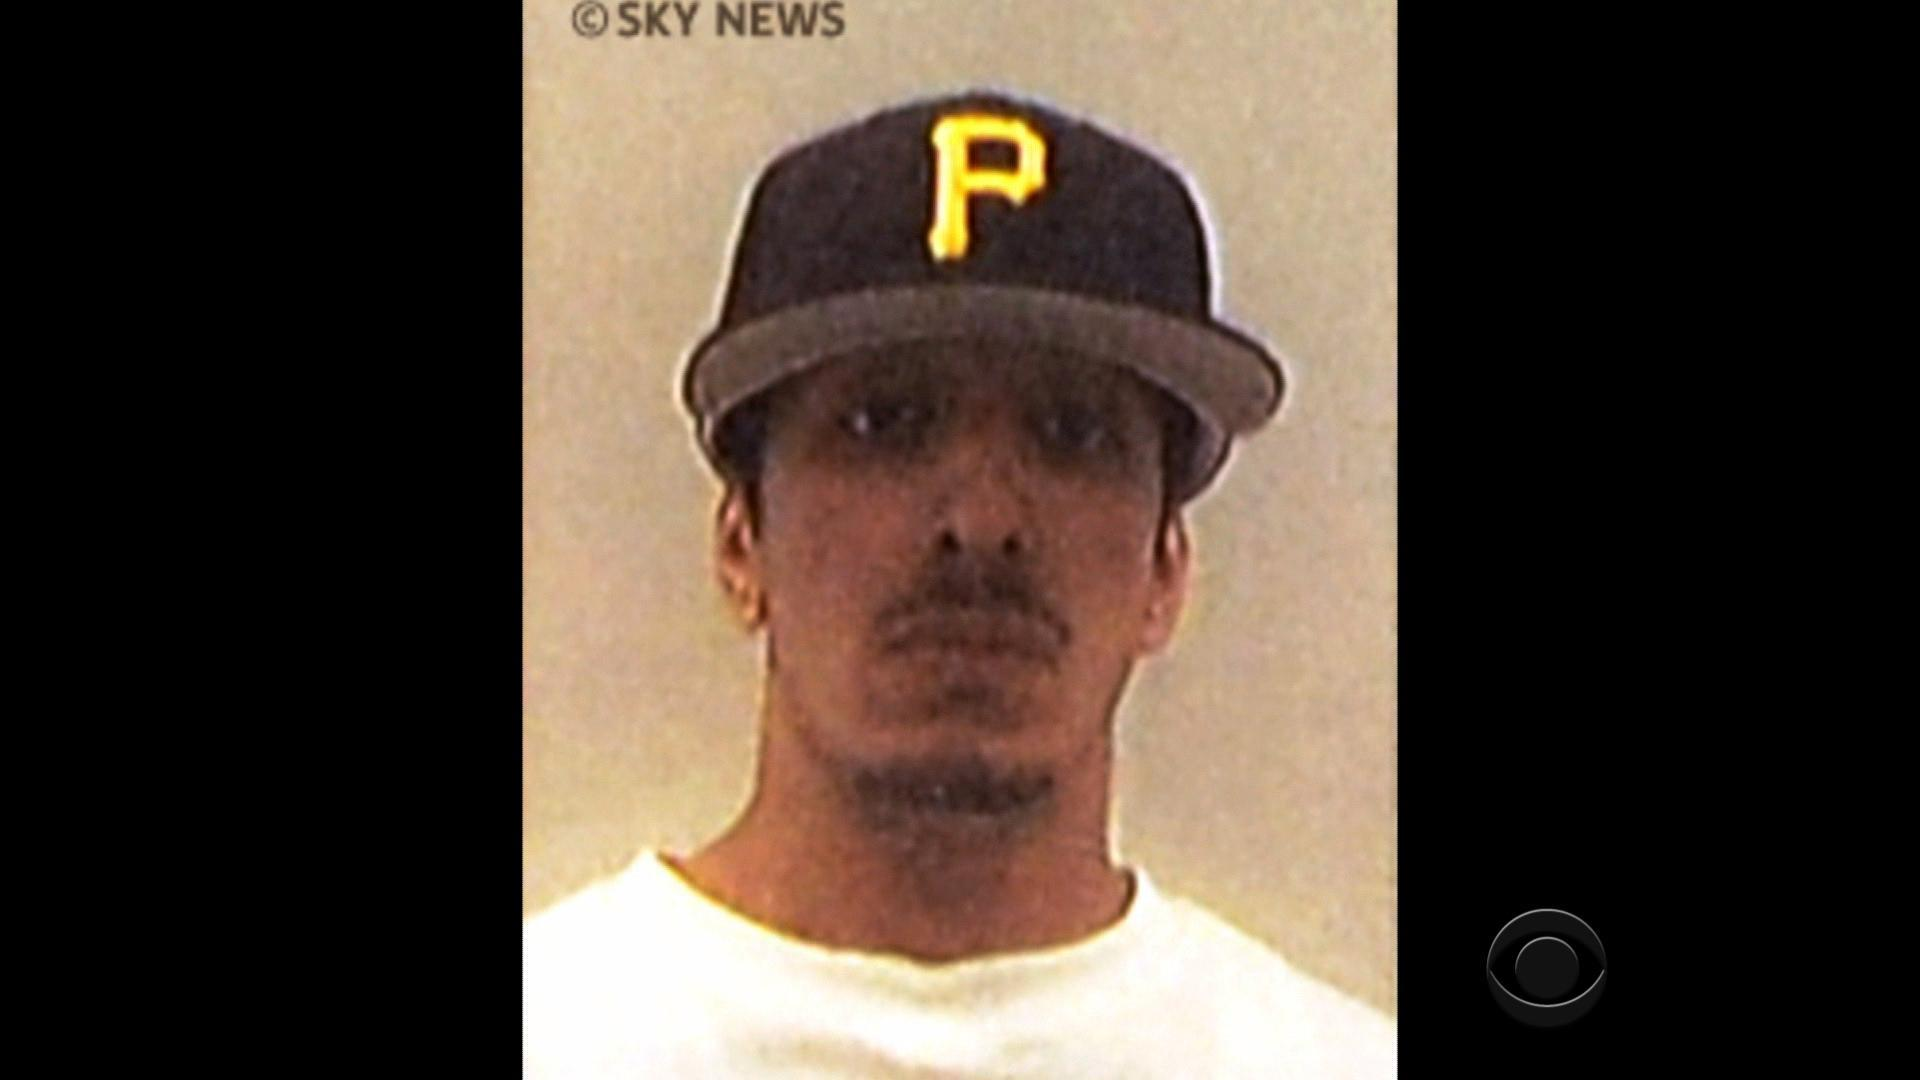 """Jihadi John"" was once suicidal, e-mails suggest"